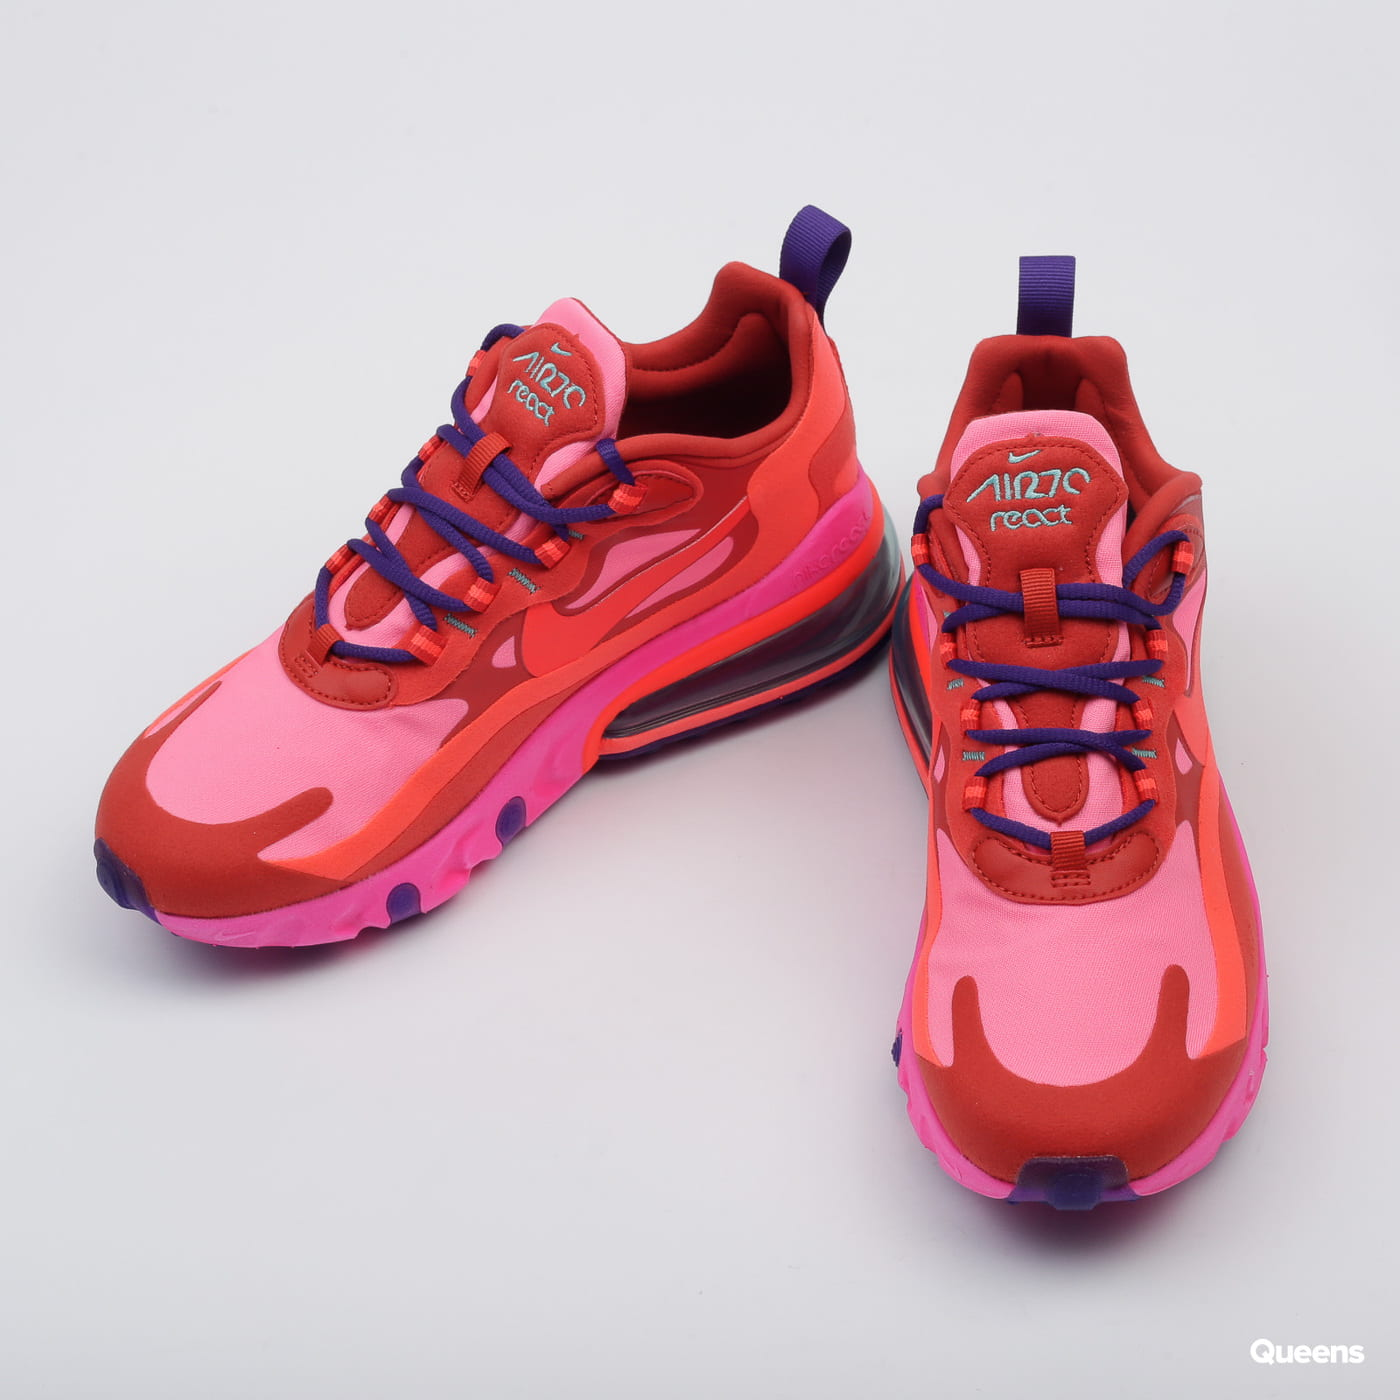 air max 270 react mystic red